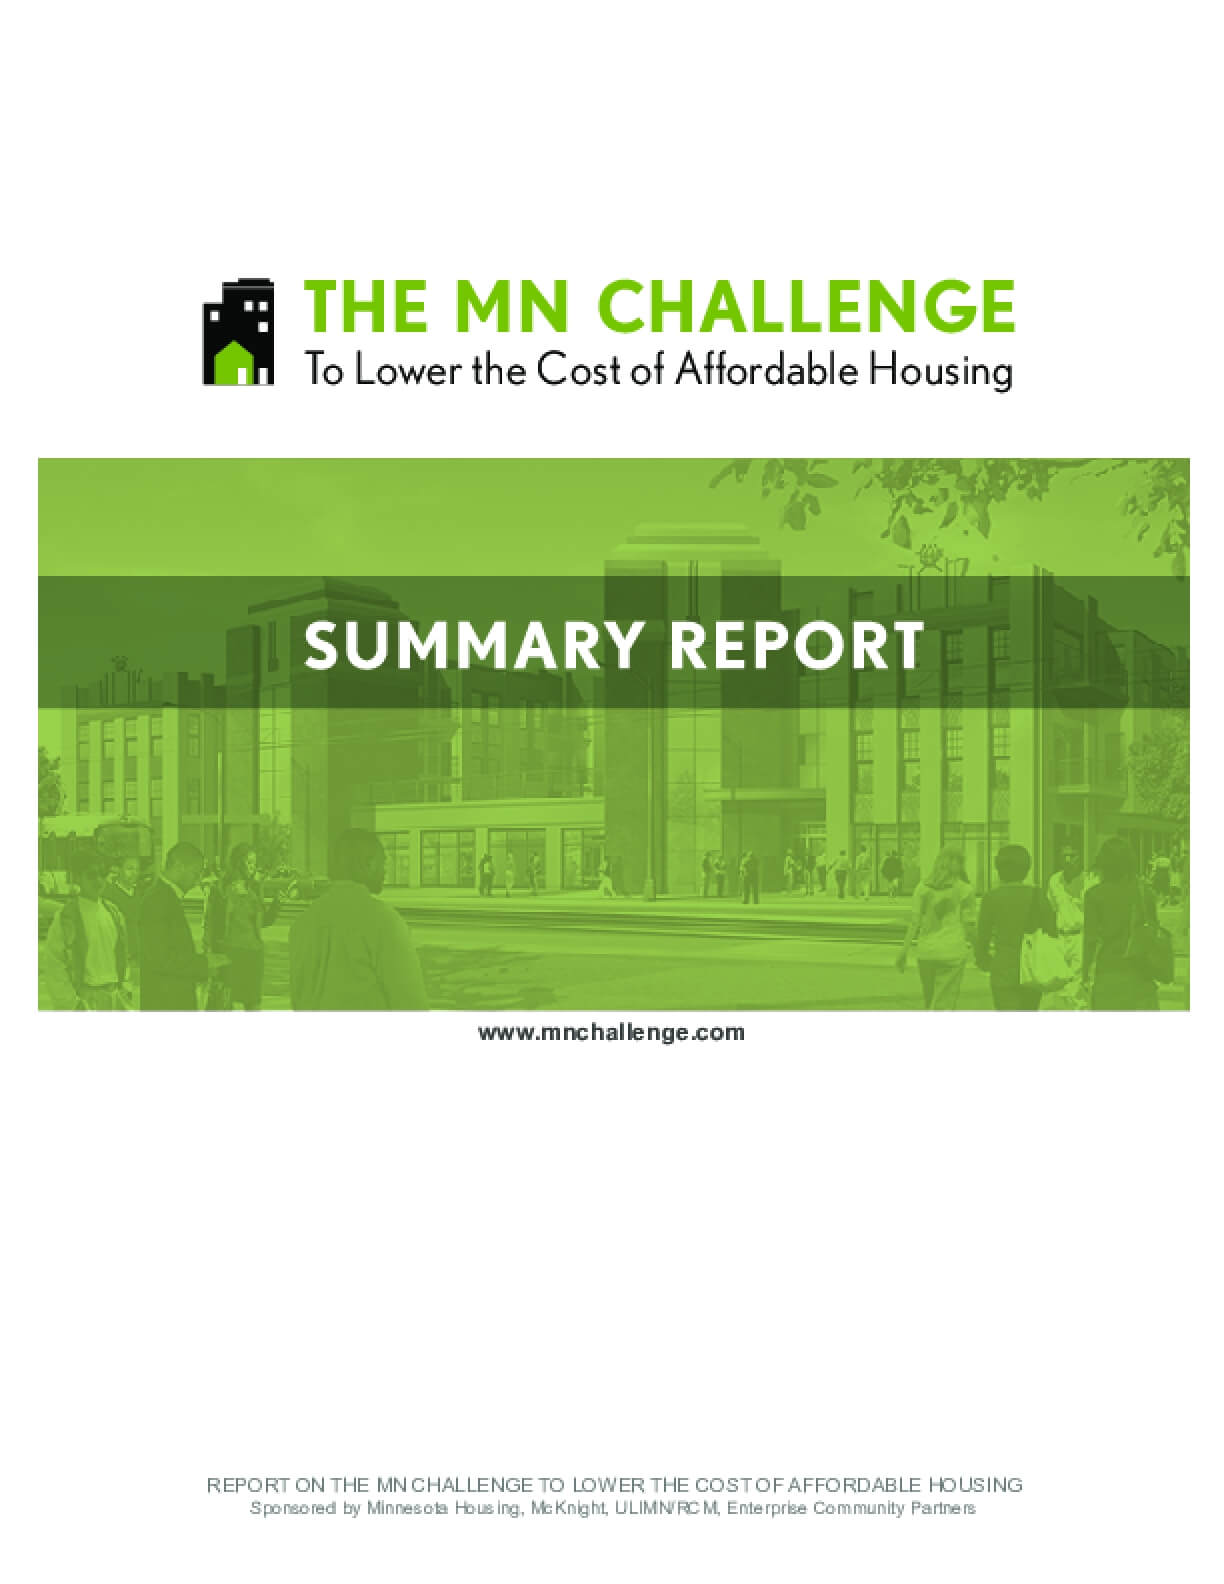 The MN Challenge: To Lower the Cost of Affordable Housing